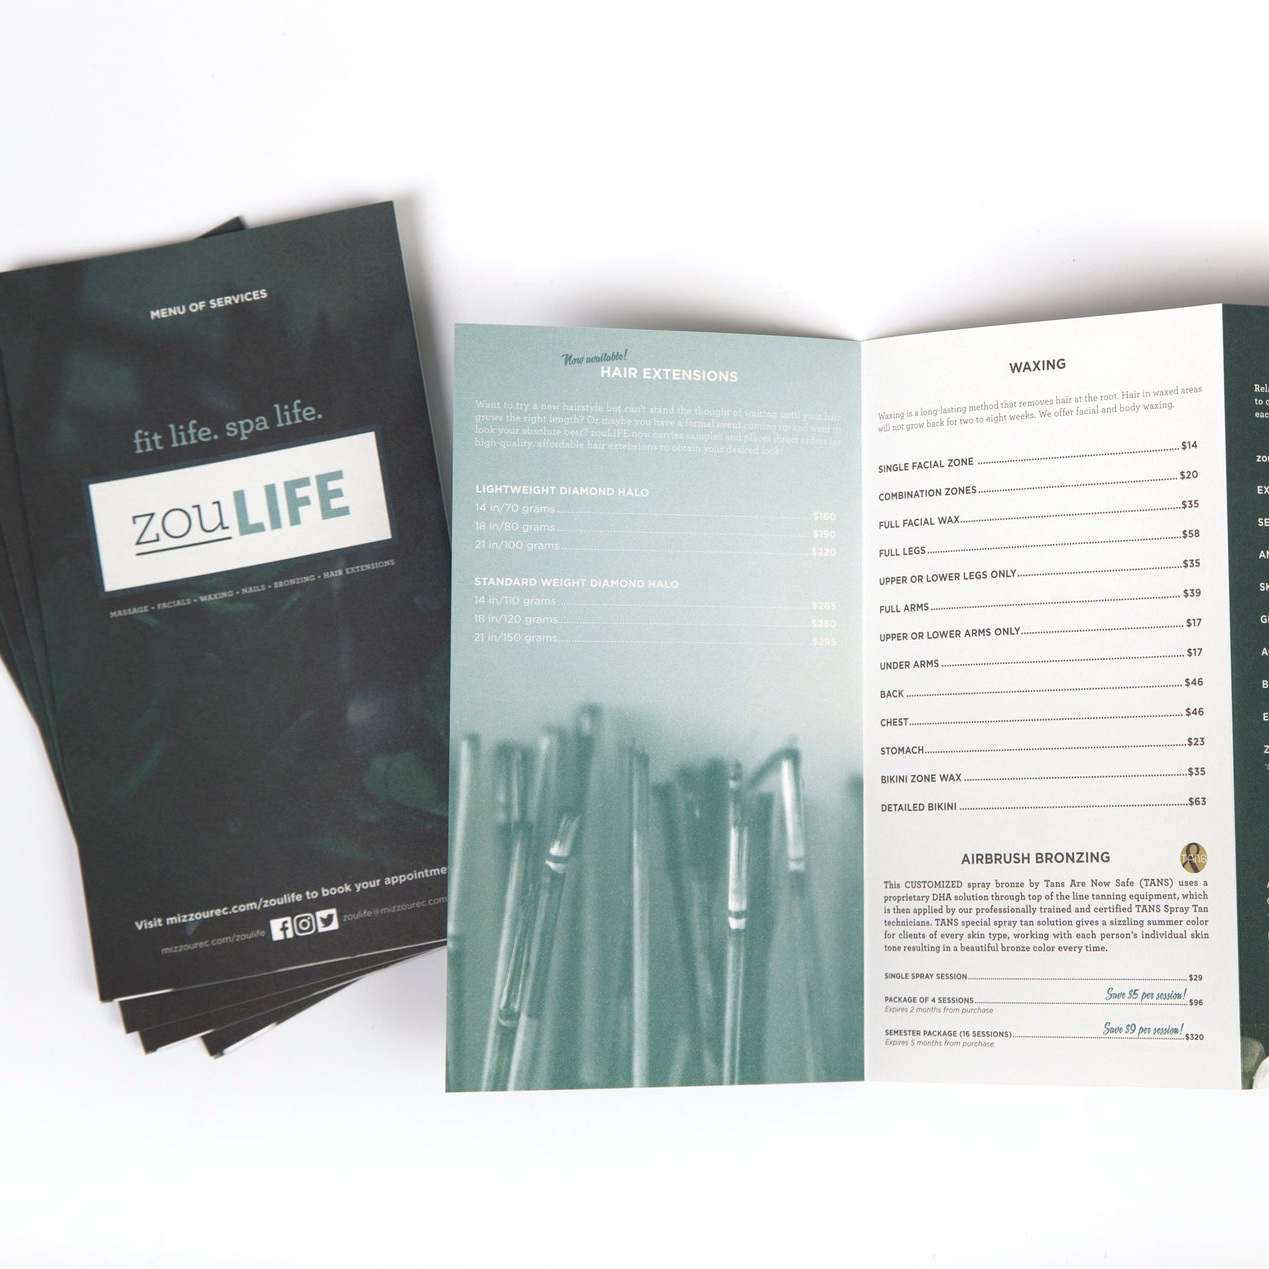 MENUS + BROCHURES - Print and digital designs and custom brand photography available for these projects.Investment: Priced per projectTimeline: 2-3 weeks